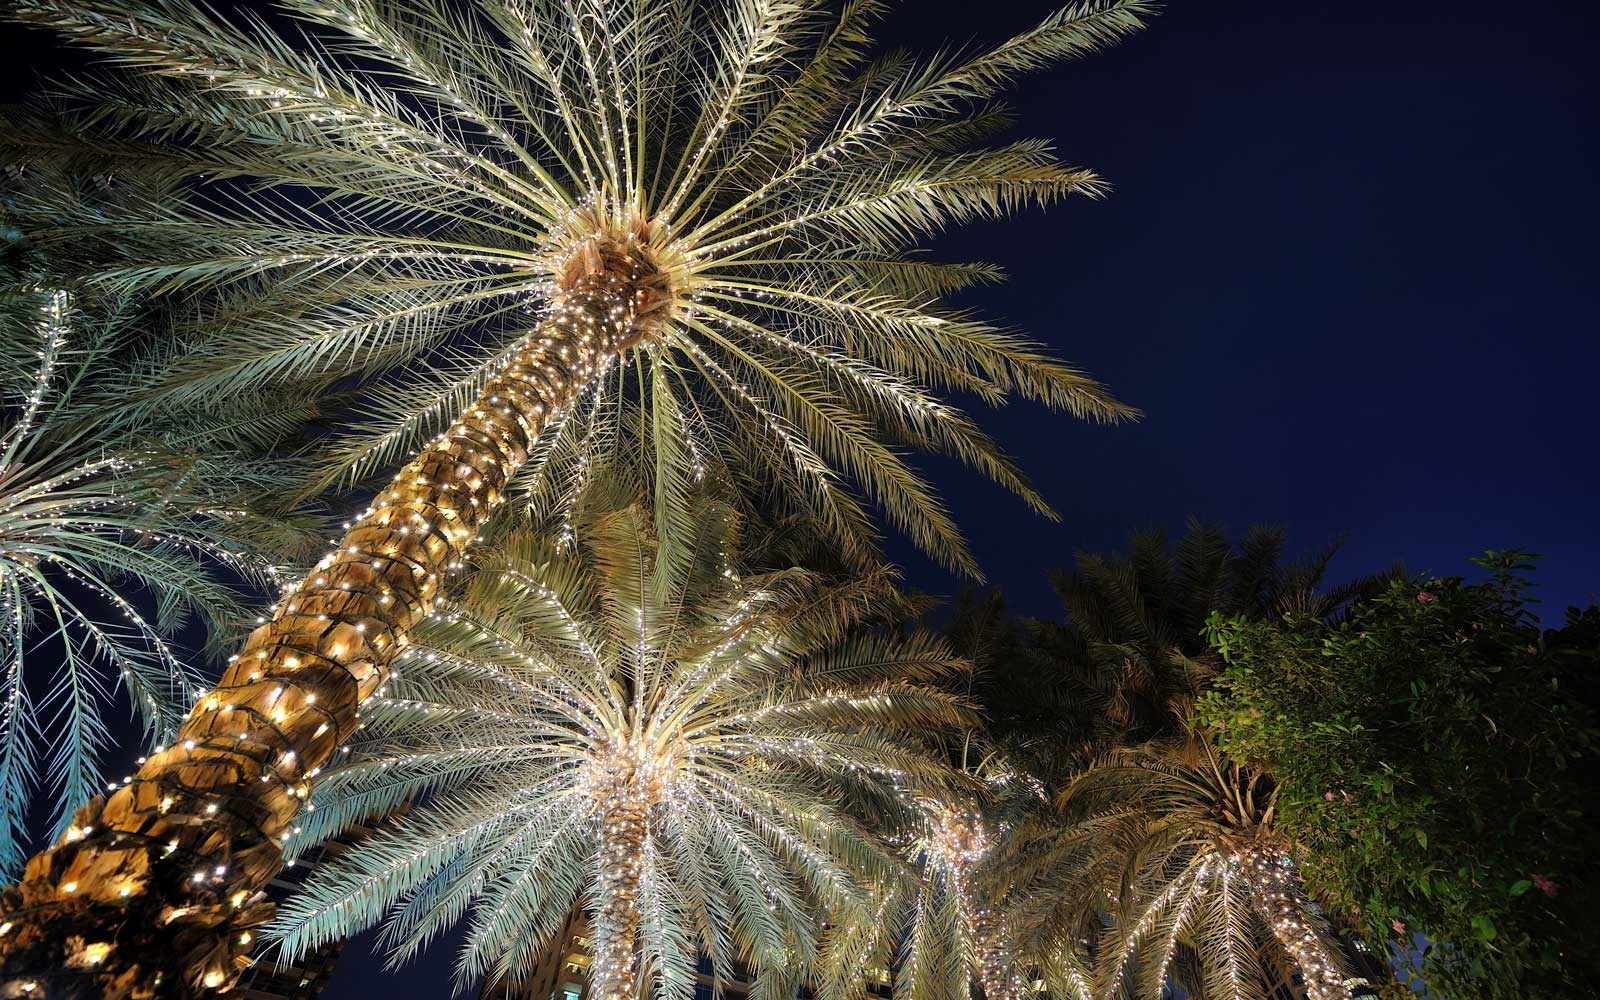 Palm trees decorated for Christmas at The Ritz-Carlton, Naples, Florida